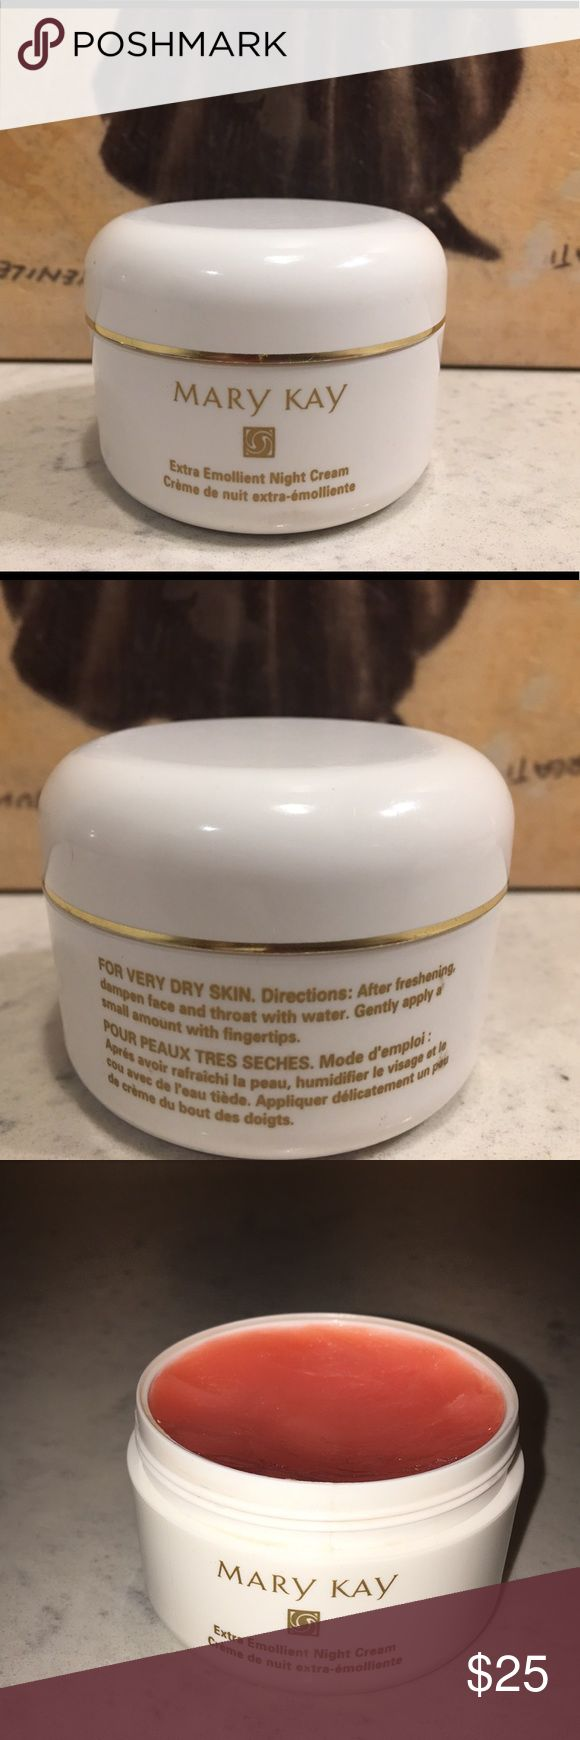 Mary Kay Extra Emollient Night Cream This Cream Works Magic! 🔮💜 Used Only a Few Times, 95% Full. If you have dry skin YOU NEED THIS! See pictures for Directions. Mary Kay Makeup